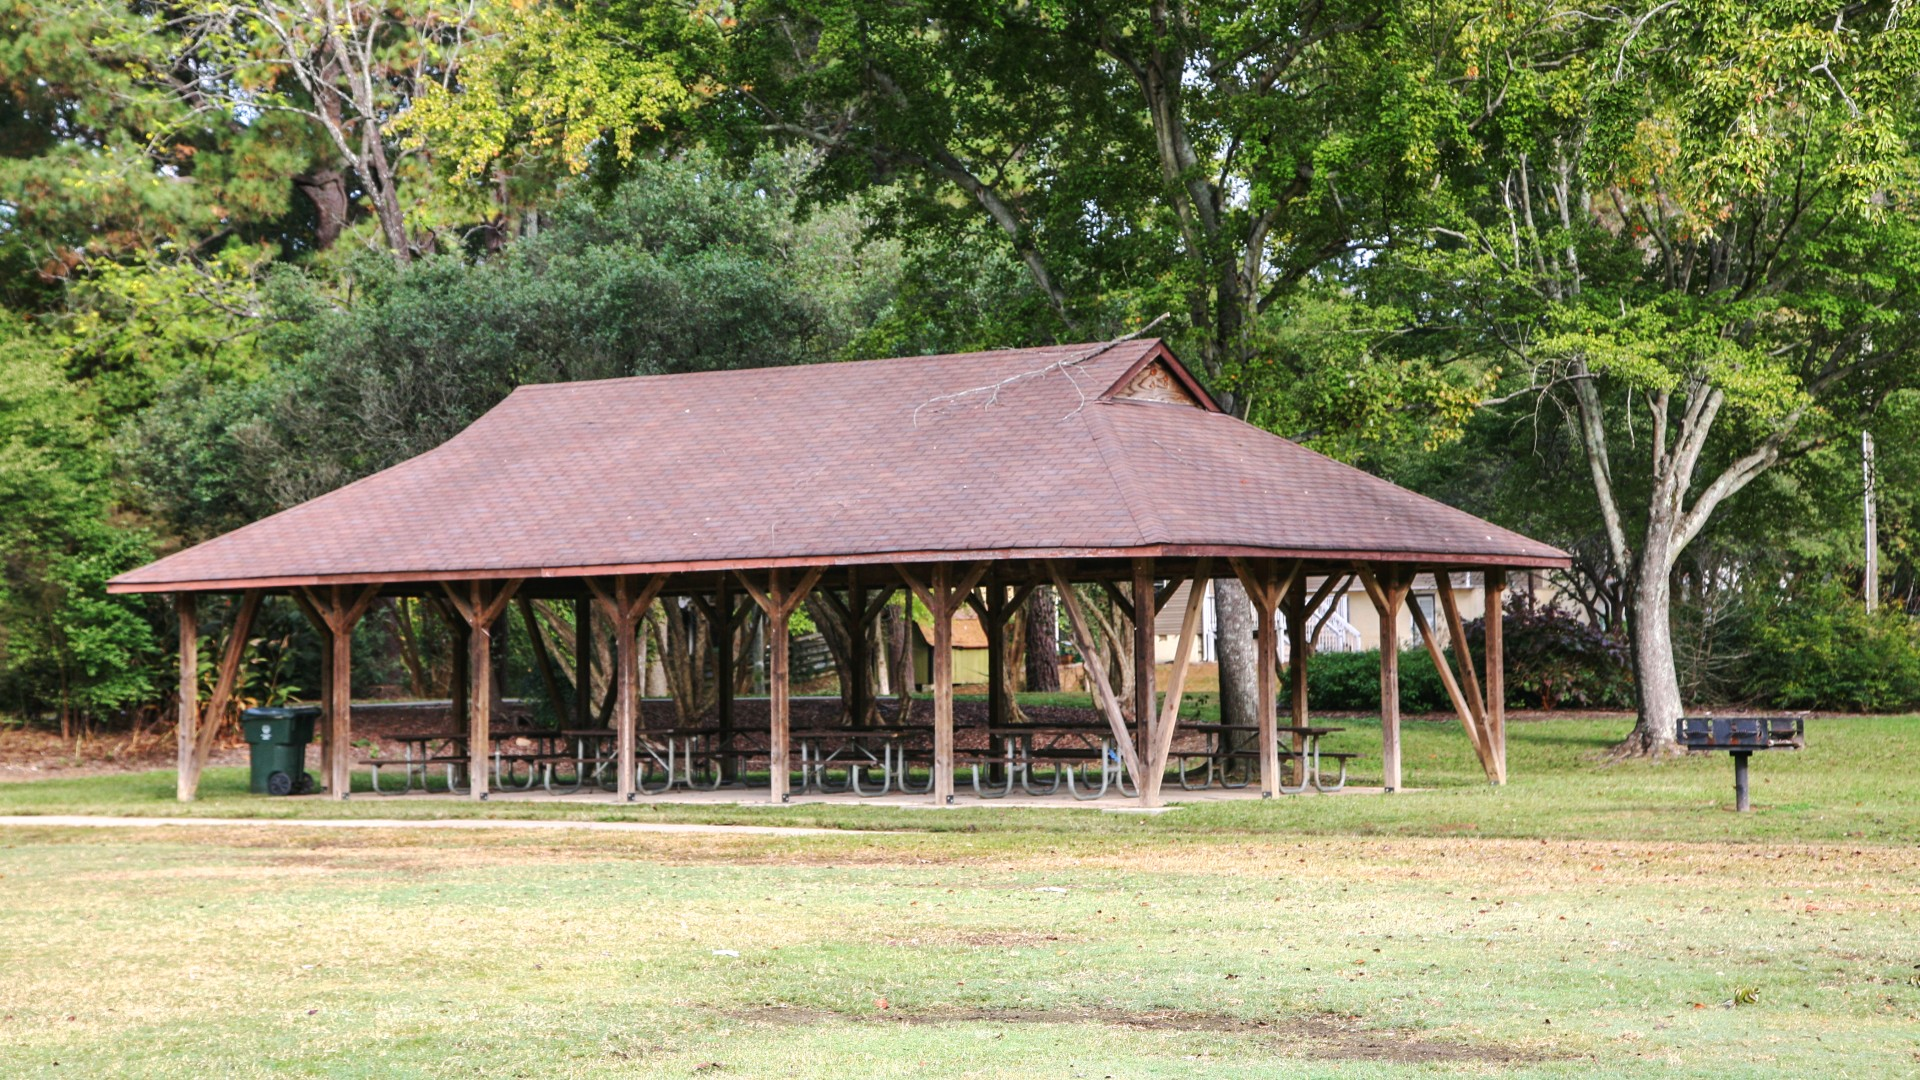 A large outdoor picnic shelter with multiple tables at Brentwood Park